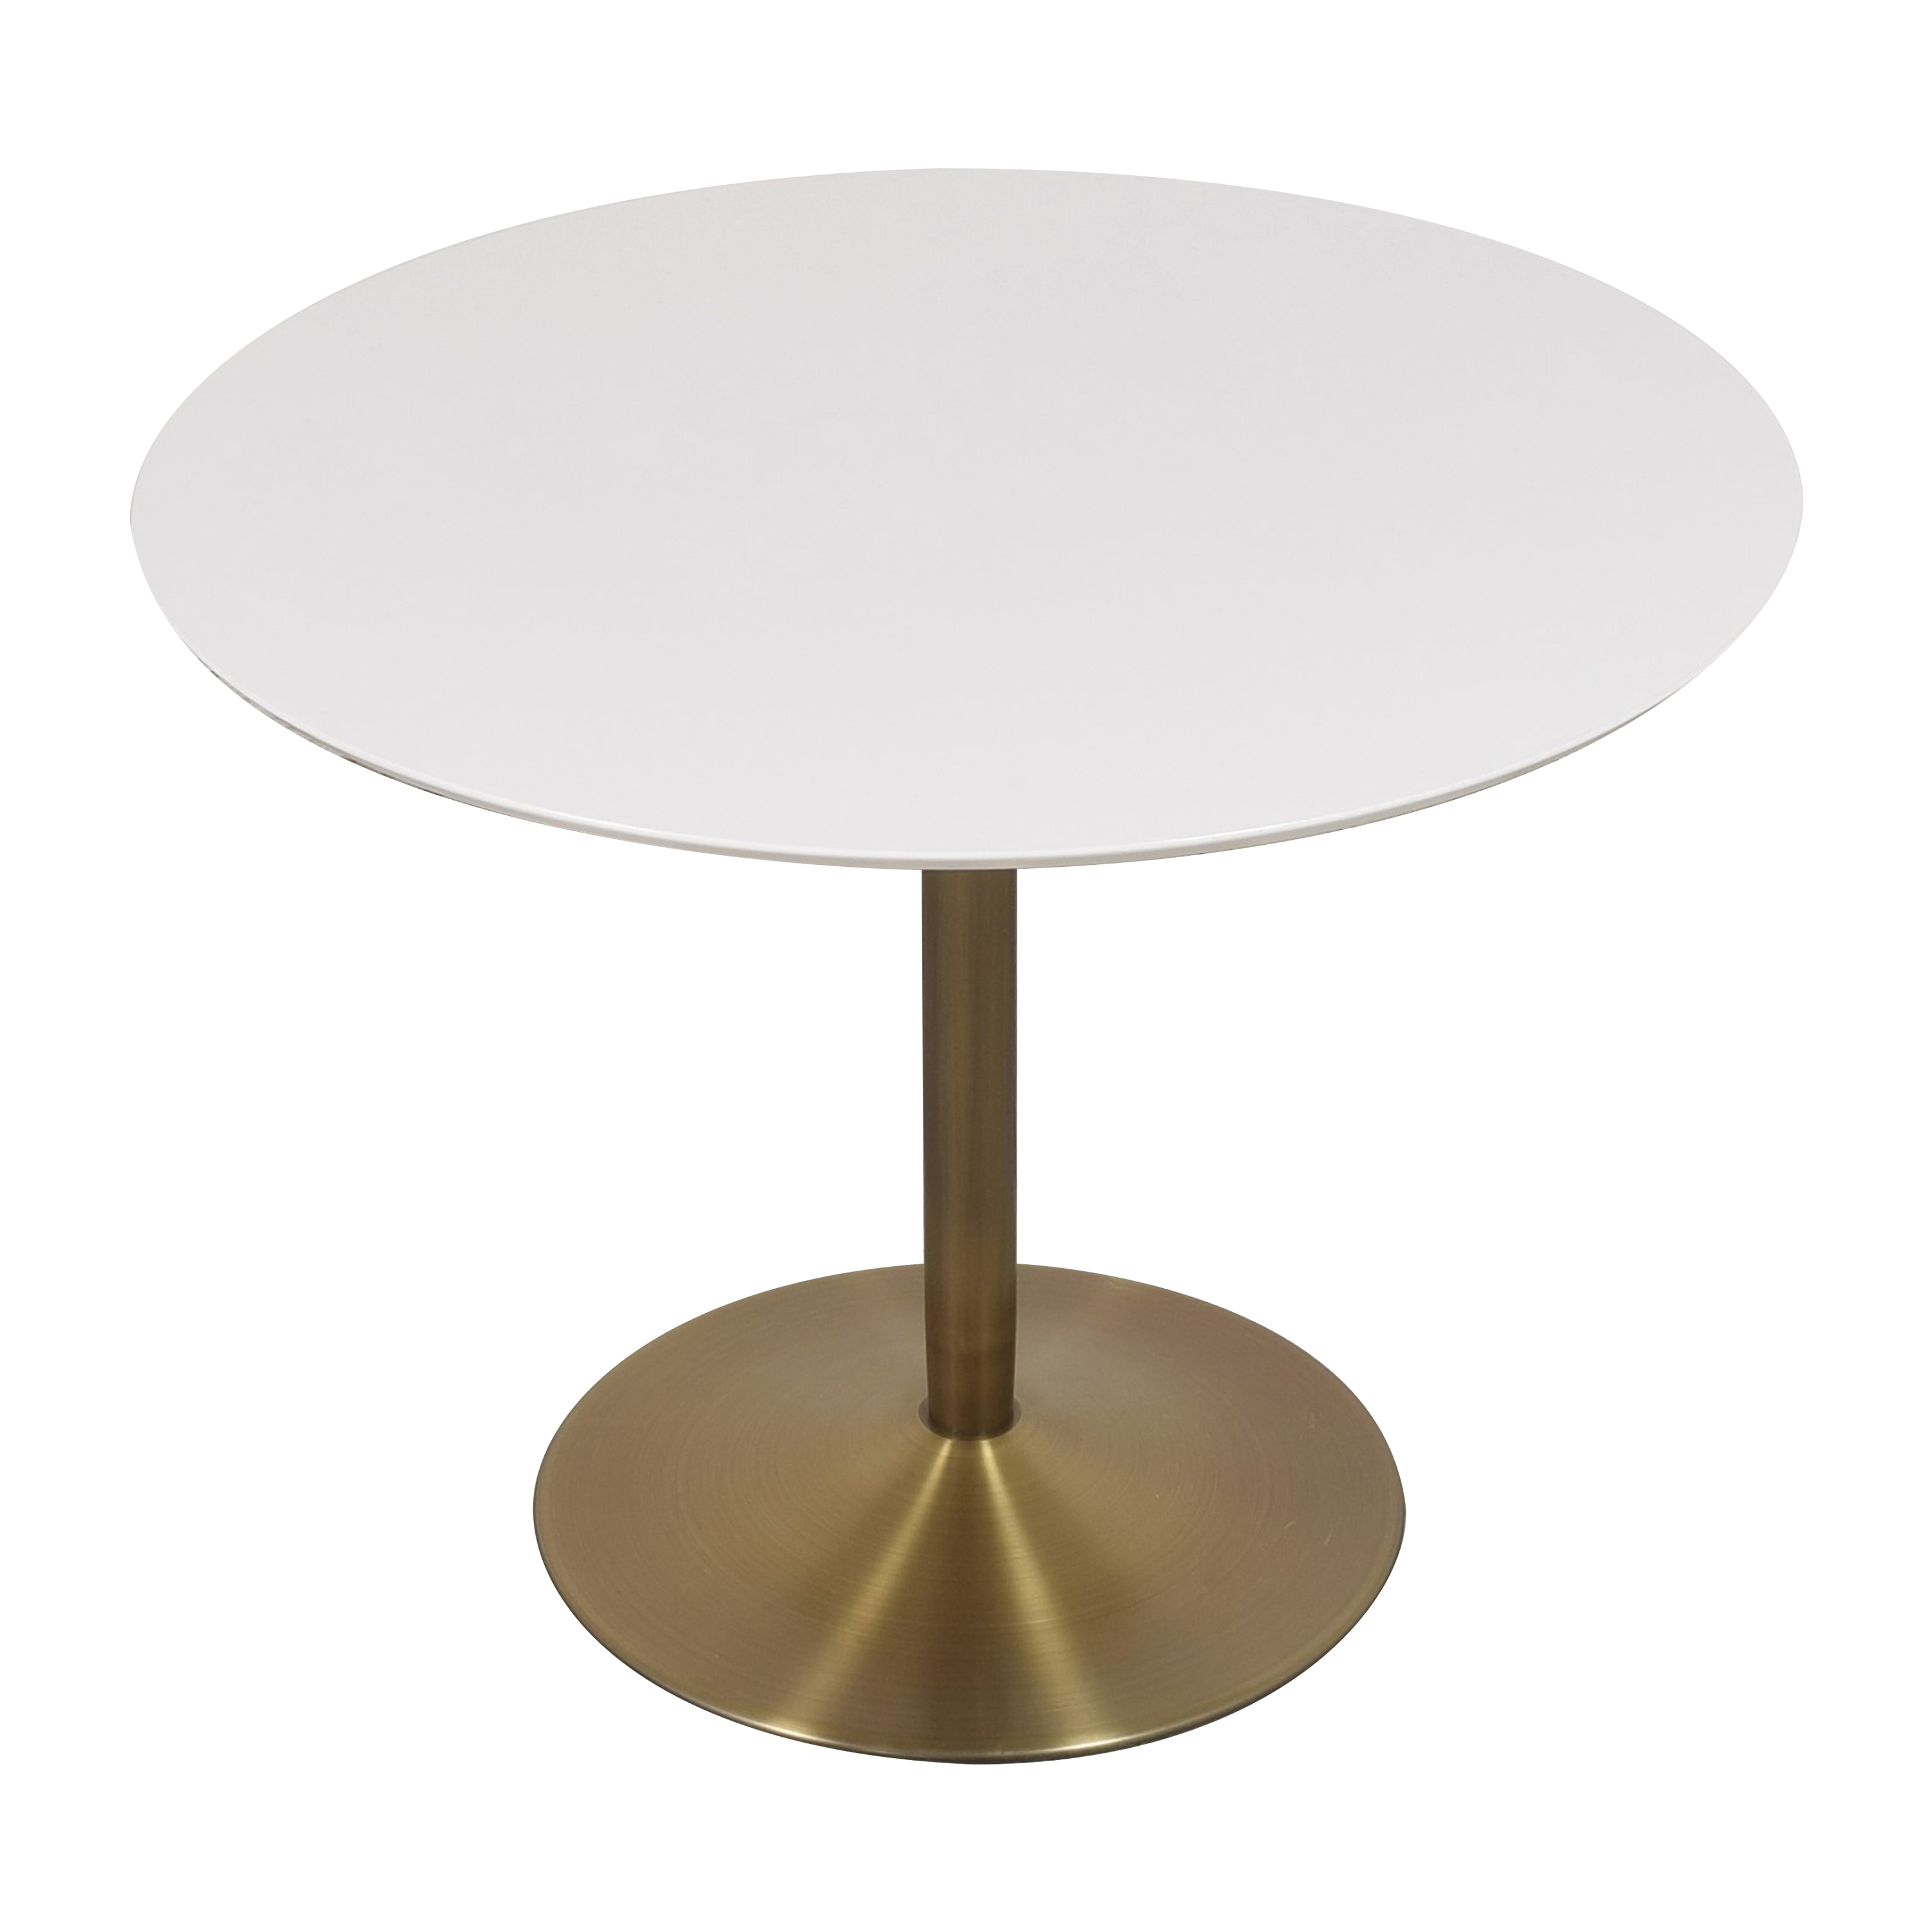 CB2 CB2 Odyssey Dining Table for sale